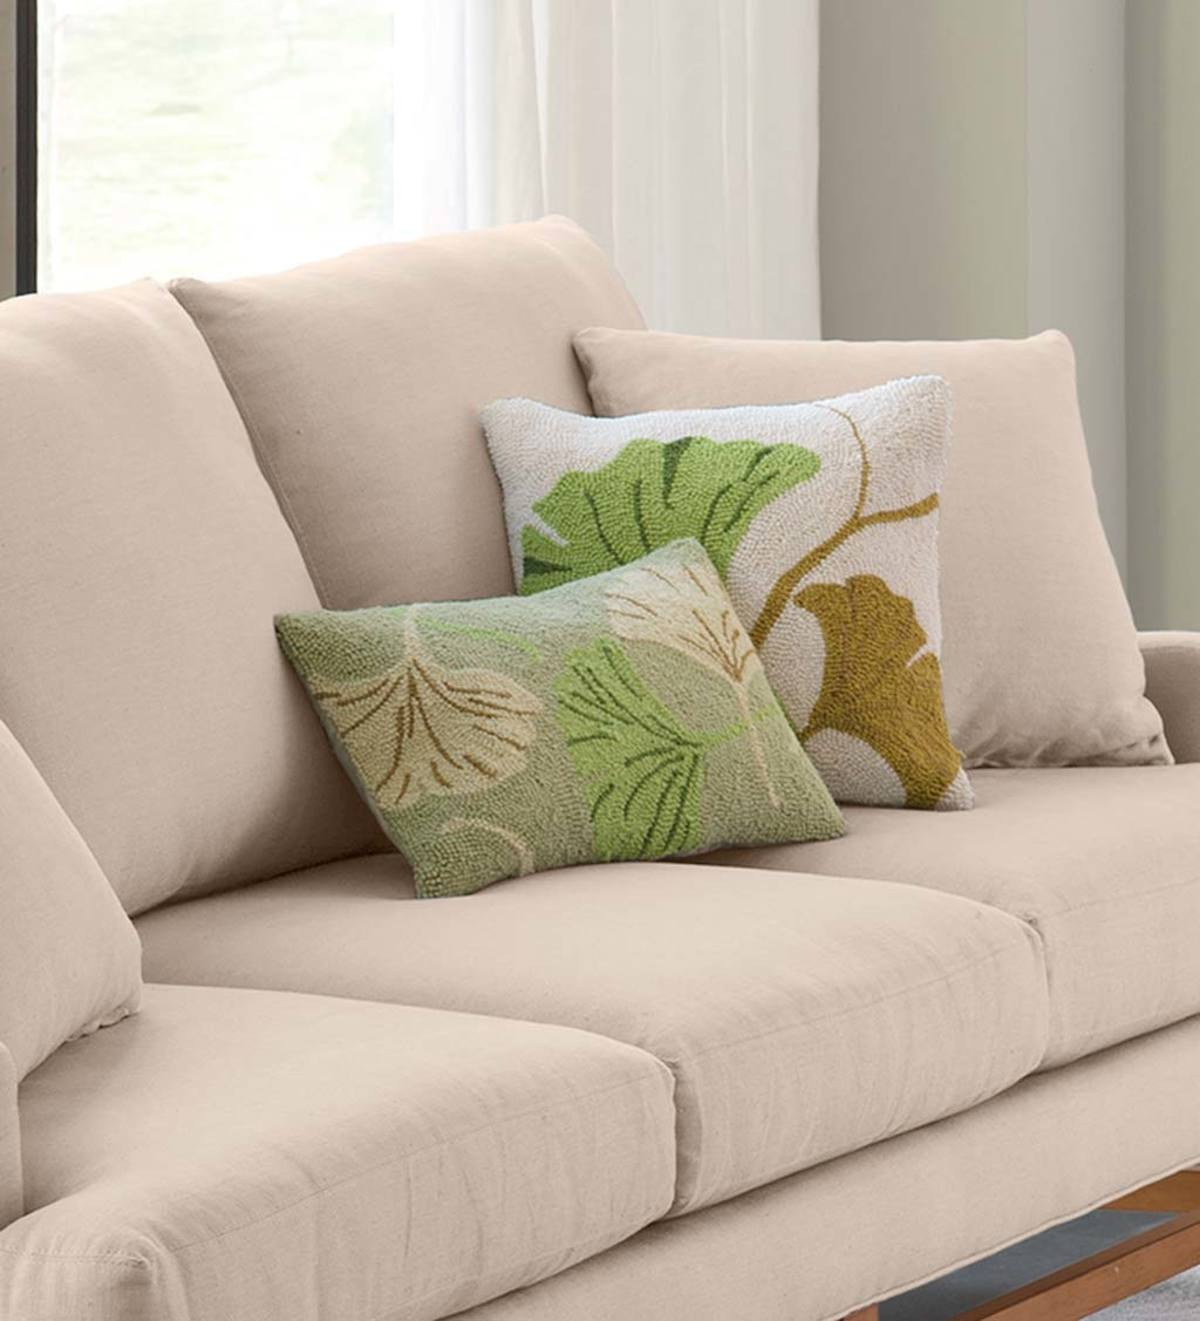 Hand Hooked Ginkgo Leaf Pillows